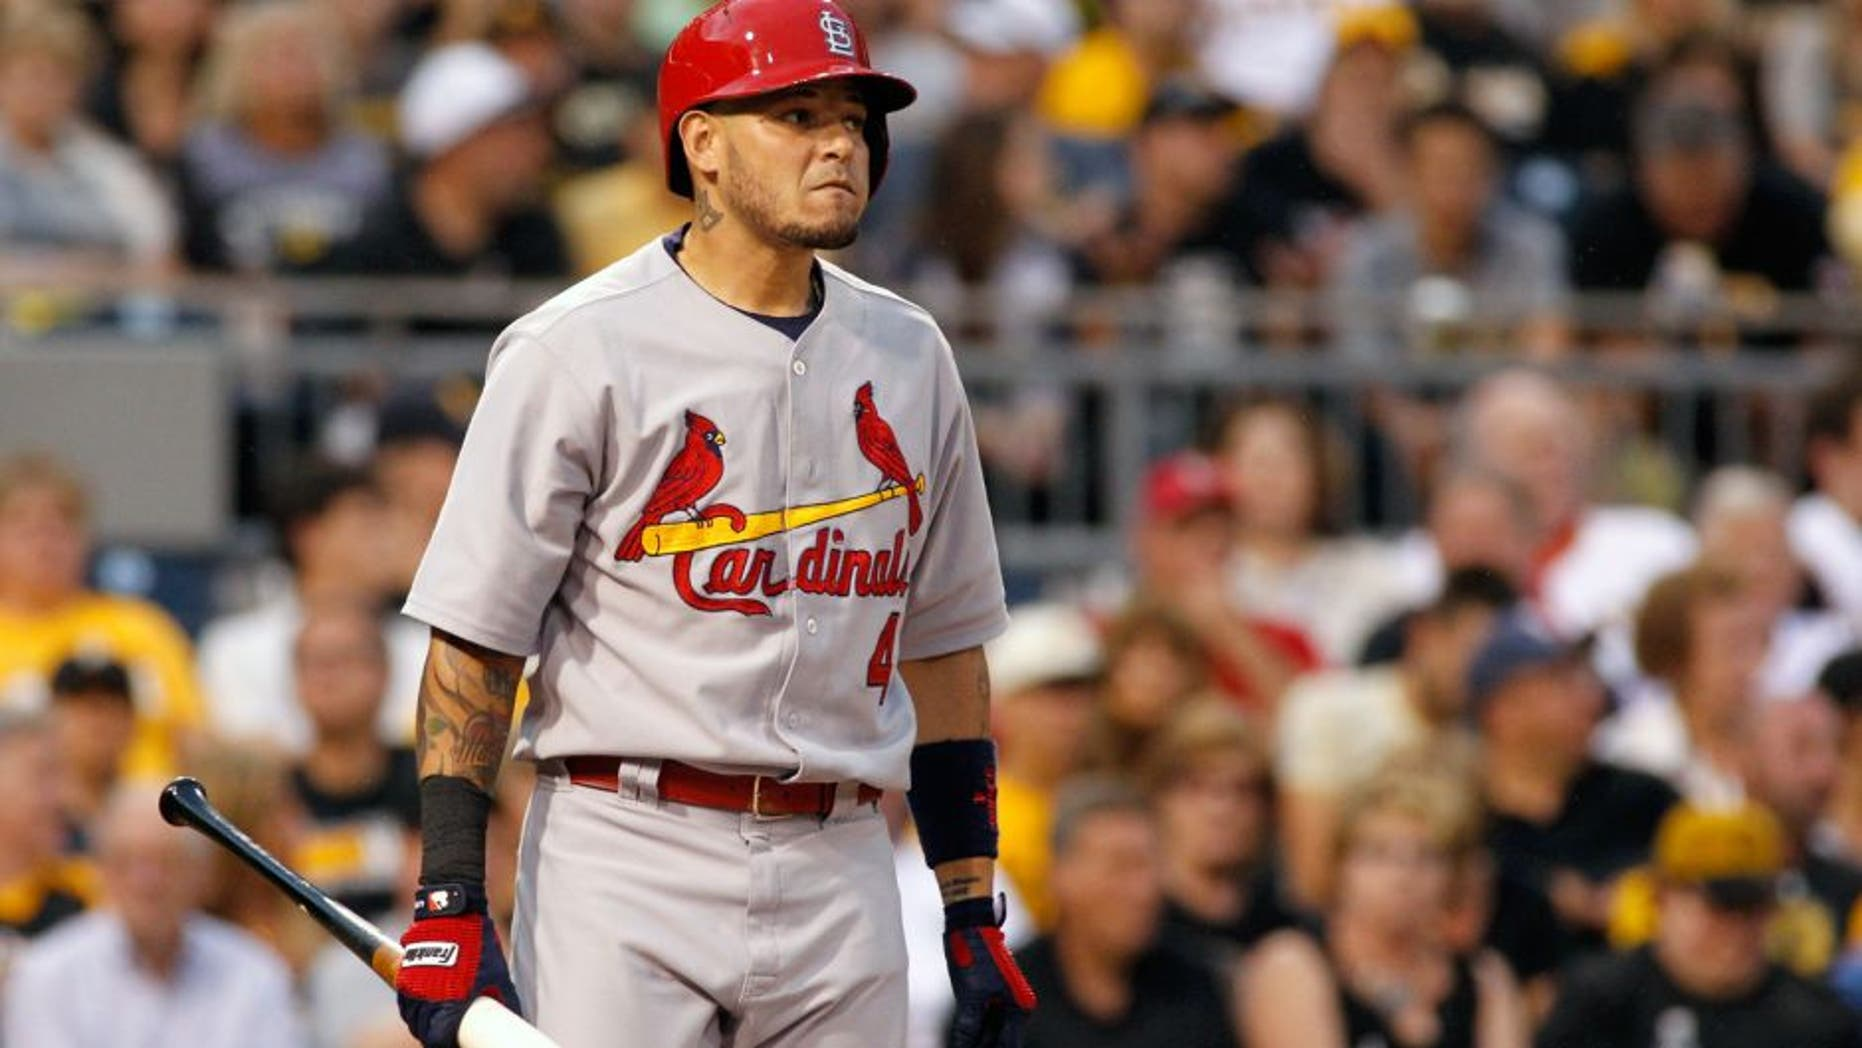 PITTSBURGH, PA - JULY 12: Yadier Molina #4 of the St. Louis Cardinals bats during the game against the Pittsburgh Pirates at PNC Park on July 12, 2015 in Pittsburgh, Pennsylvania. (Photo by Justin K. Aller/Getty Images)